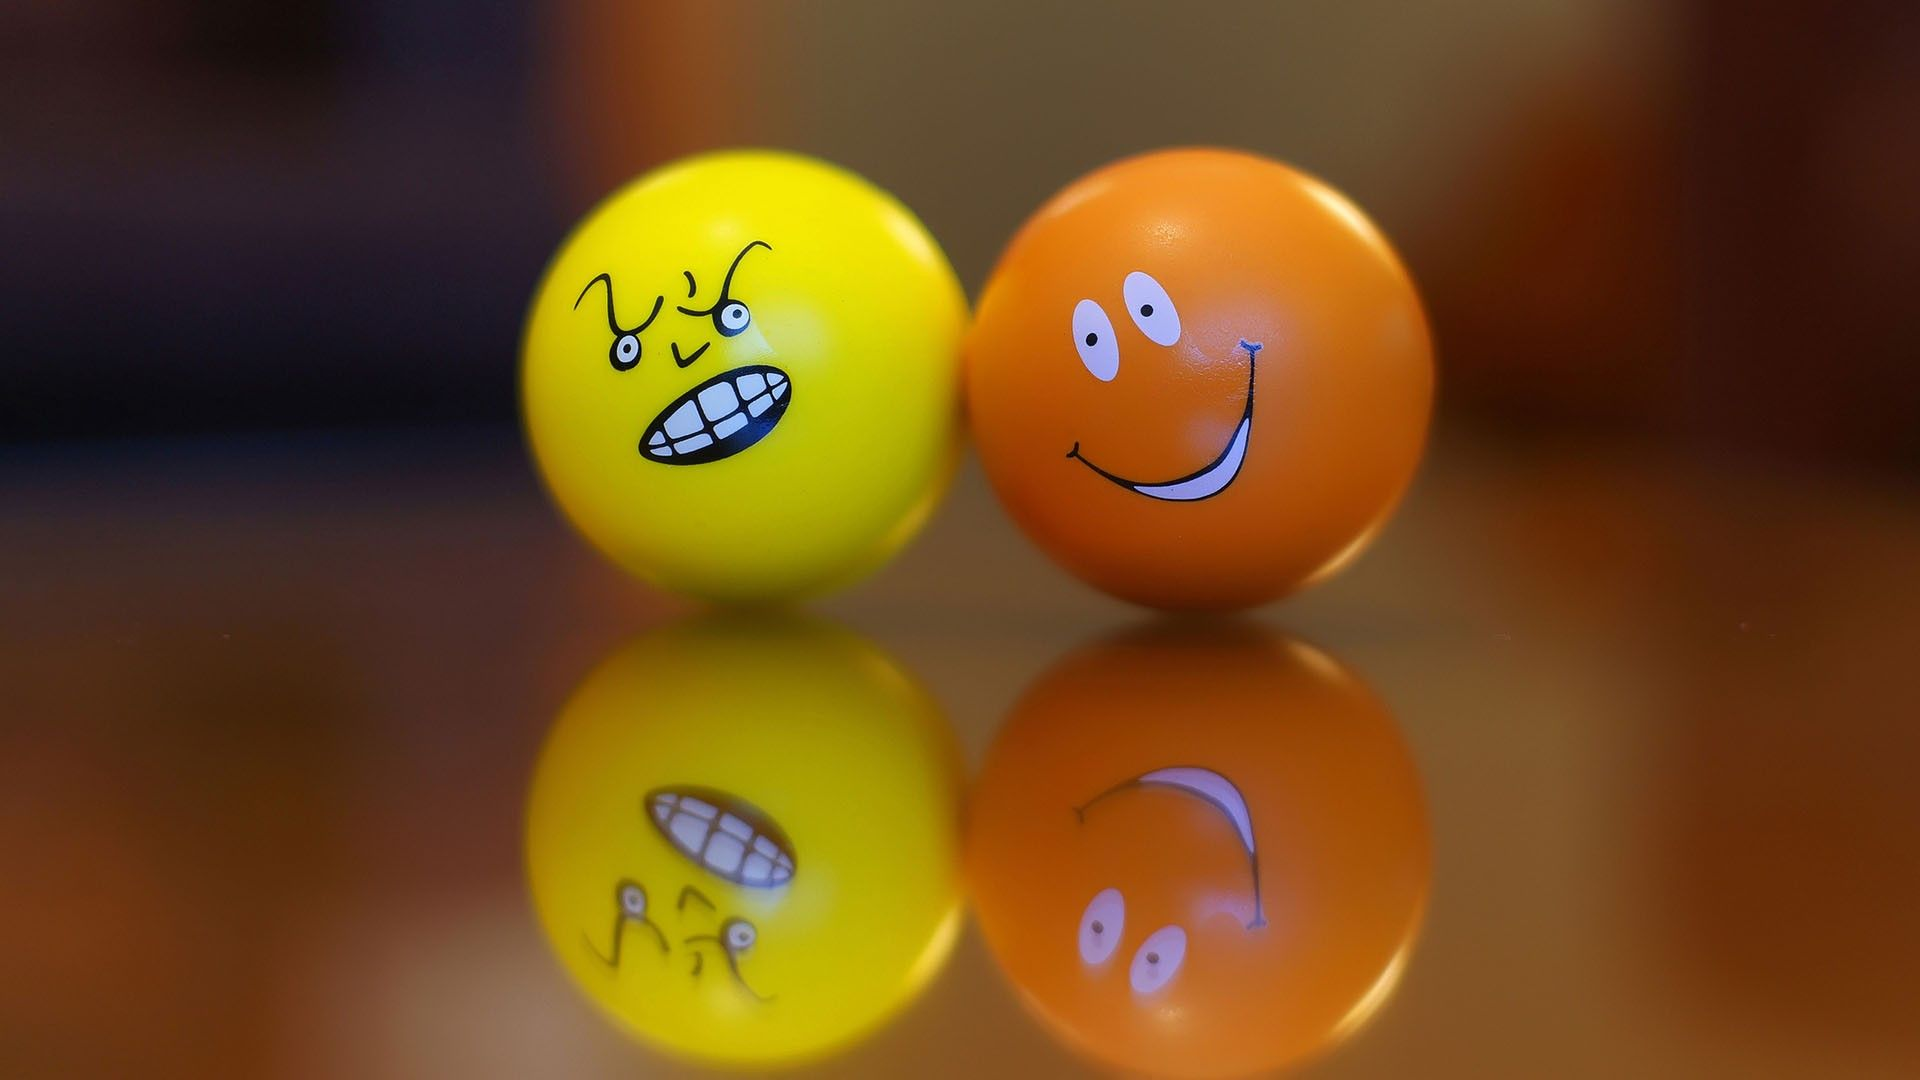 Smiley emoticons hd 1080p wallpapers download